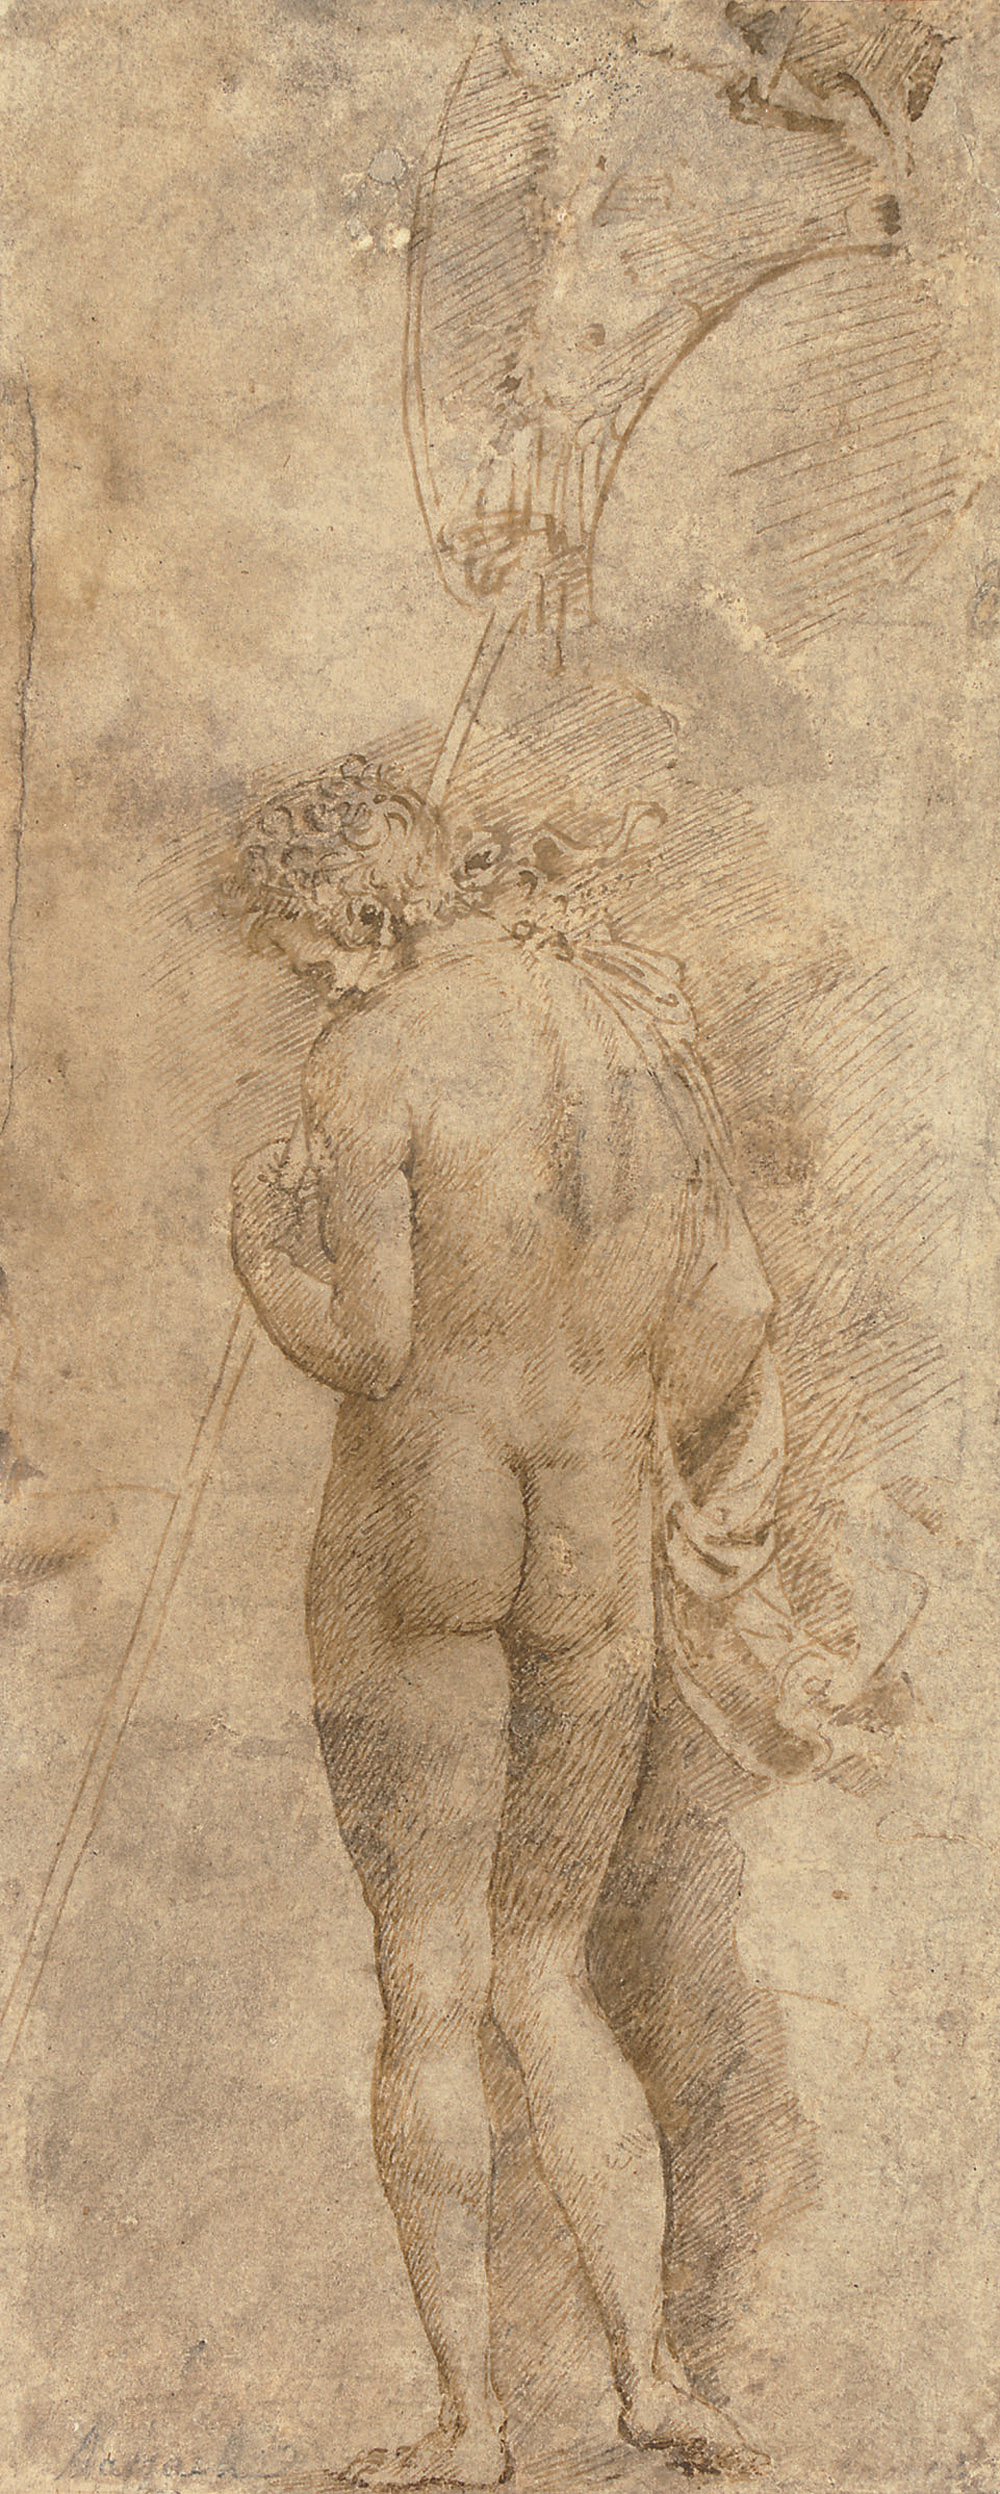 A standing male nude, seen from behind, holding a trophy standard